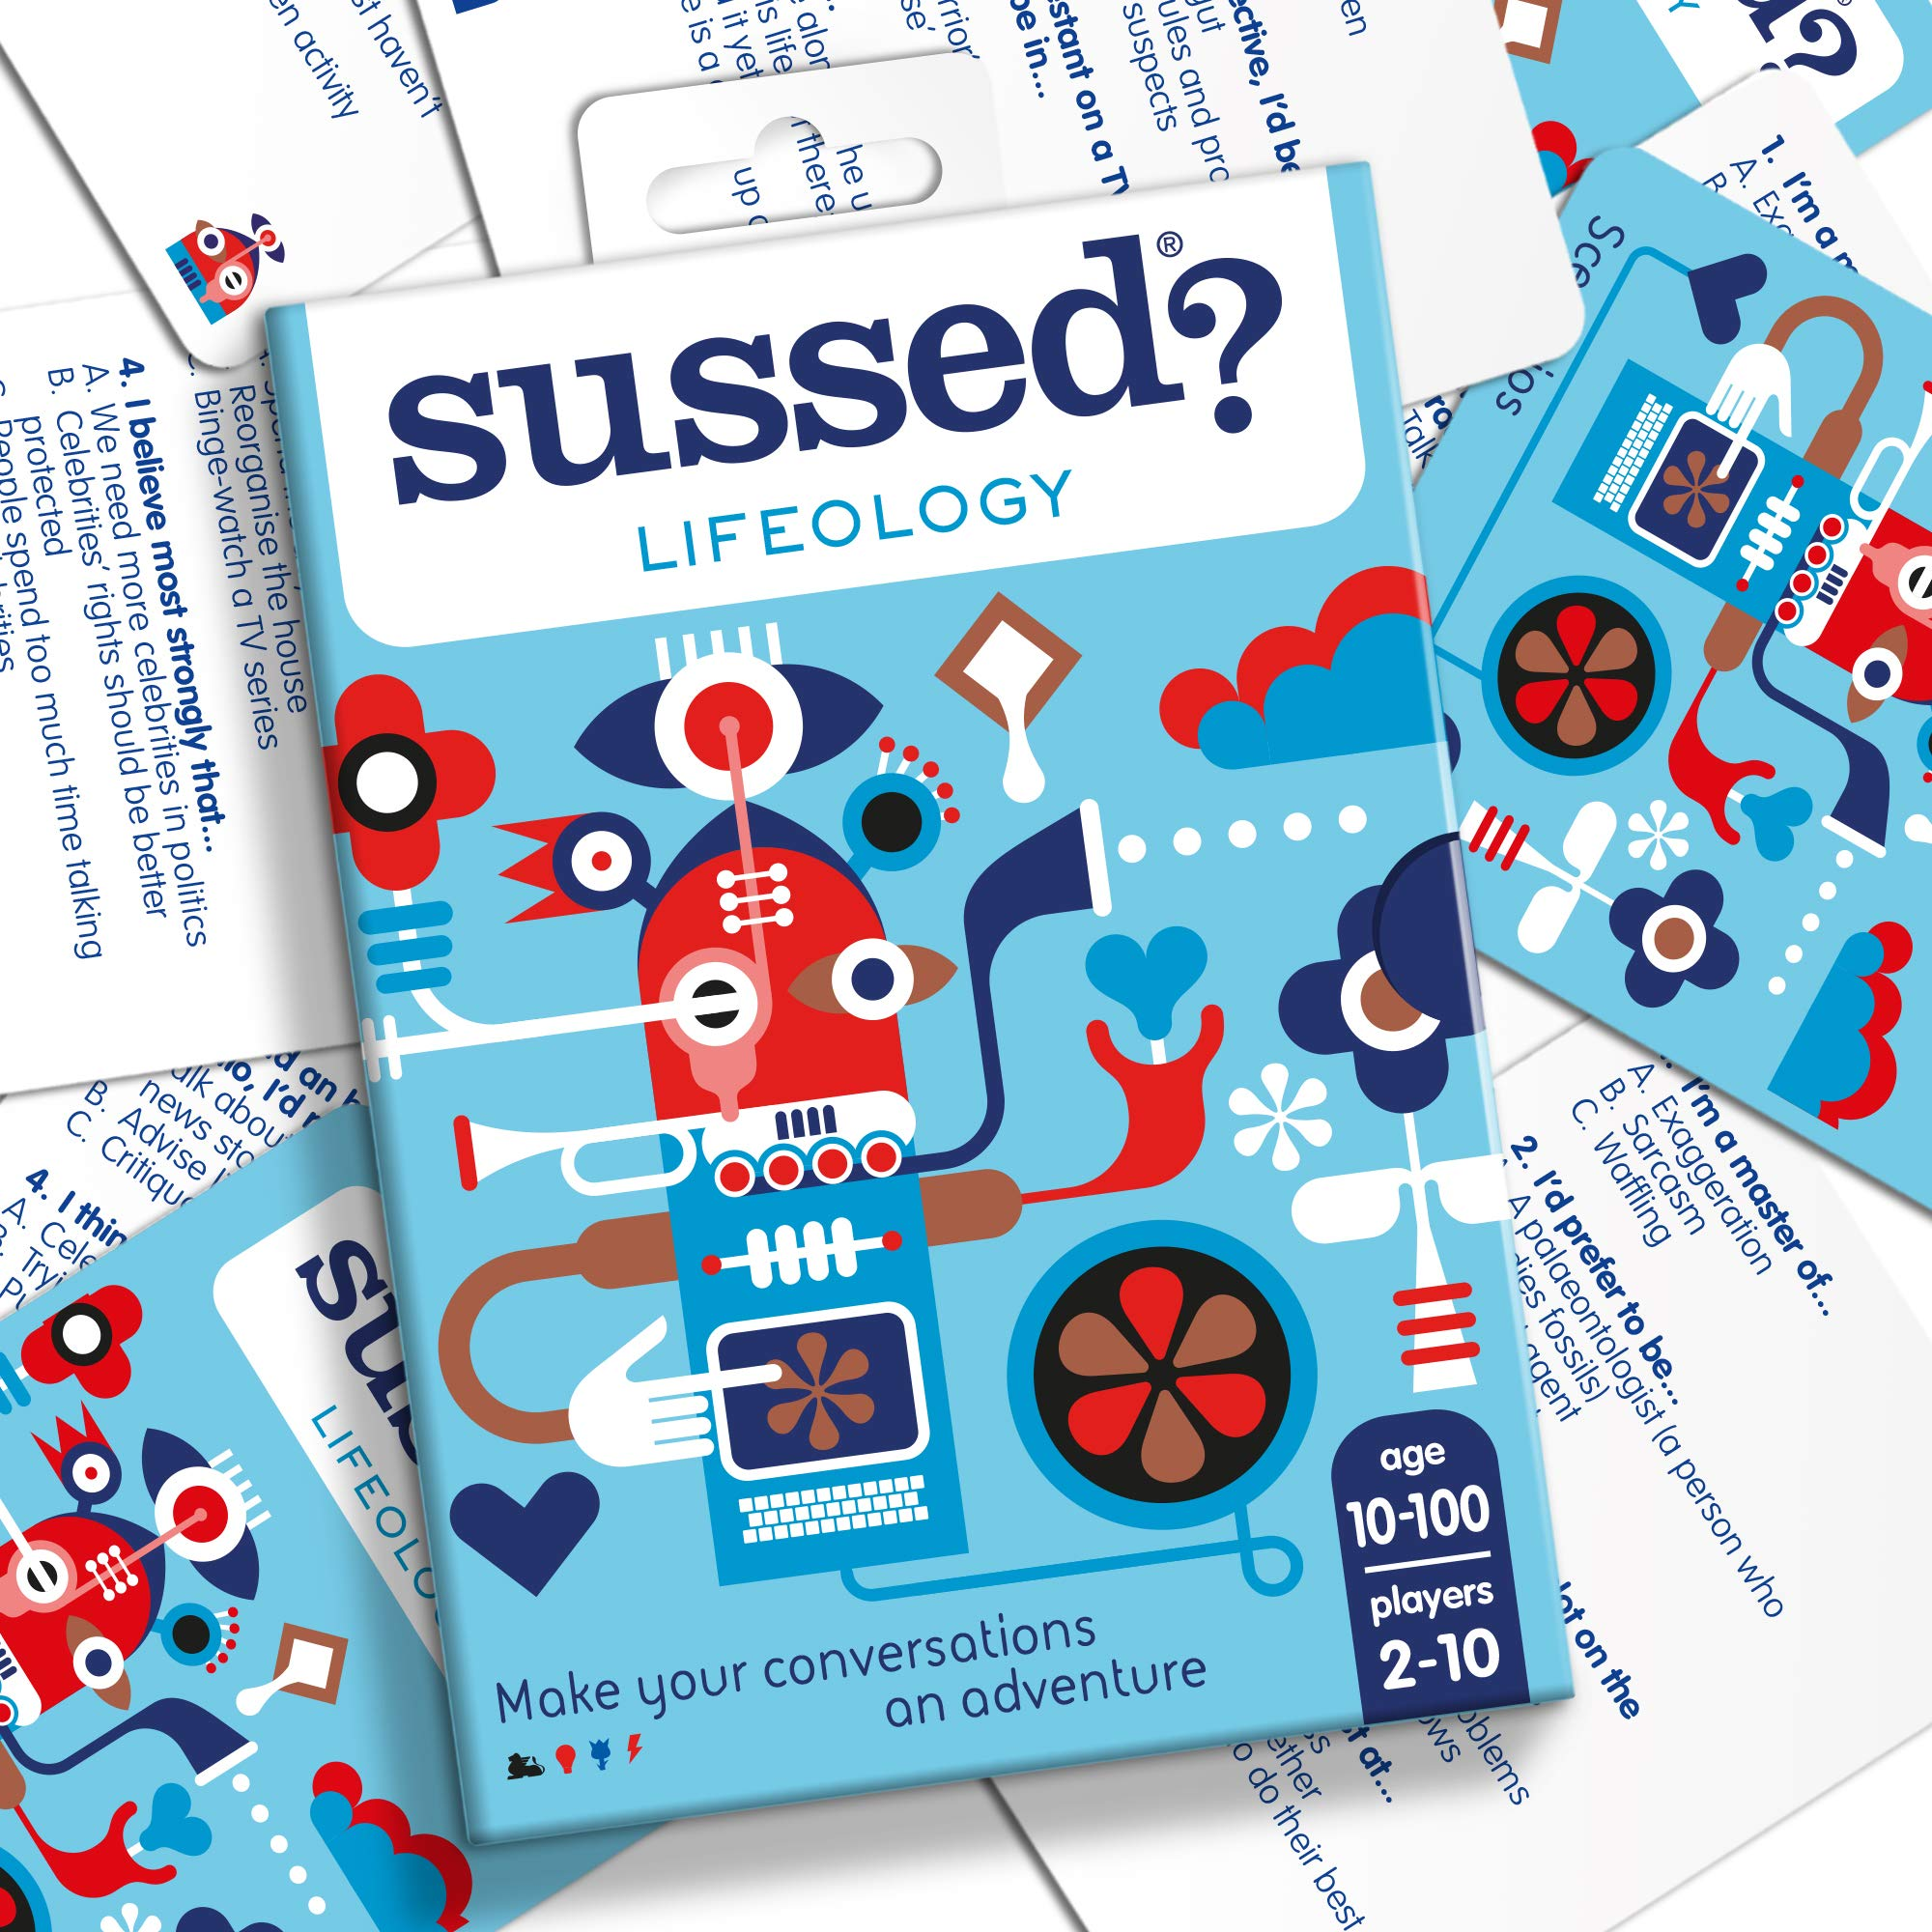 SUSSED - 220 Conversation Starters : A Quiz About Who Knows Who Best [ A Card Game for Video Calls with Friends and Family ] [ Lifeology Starter Deck ]